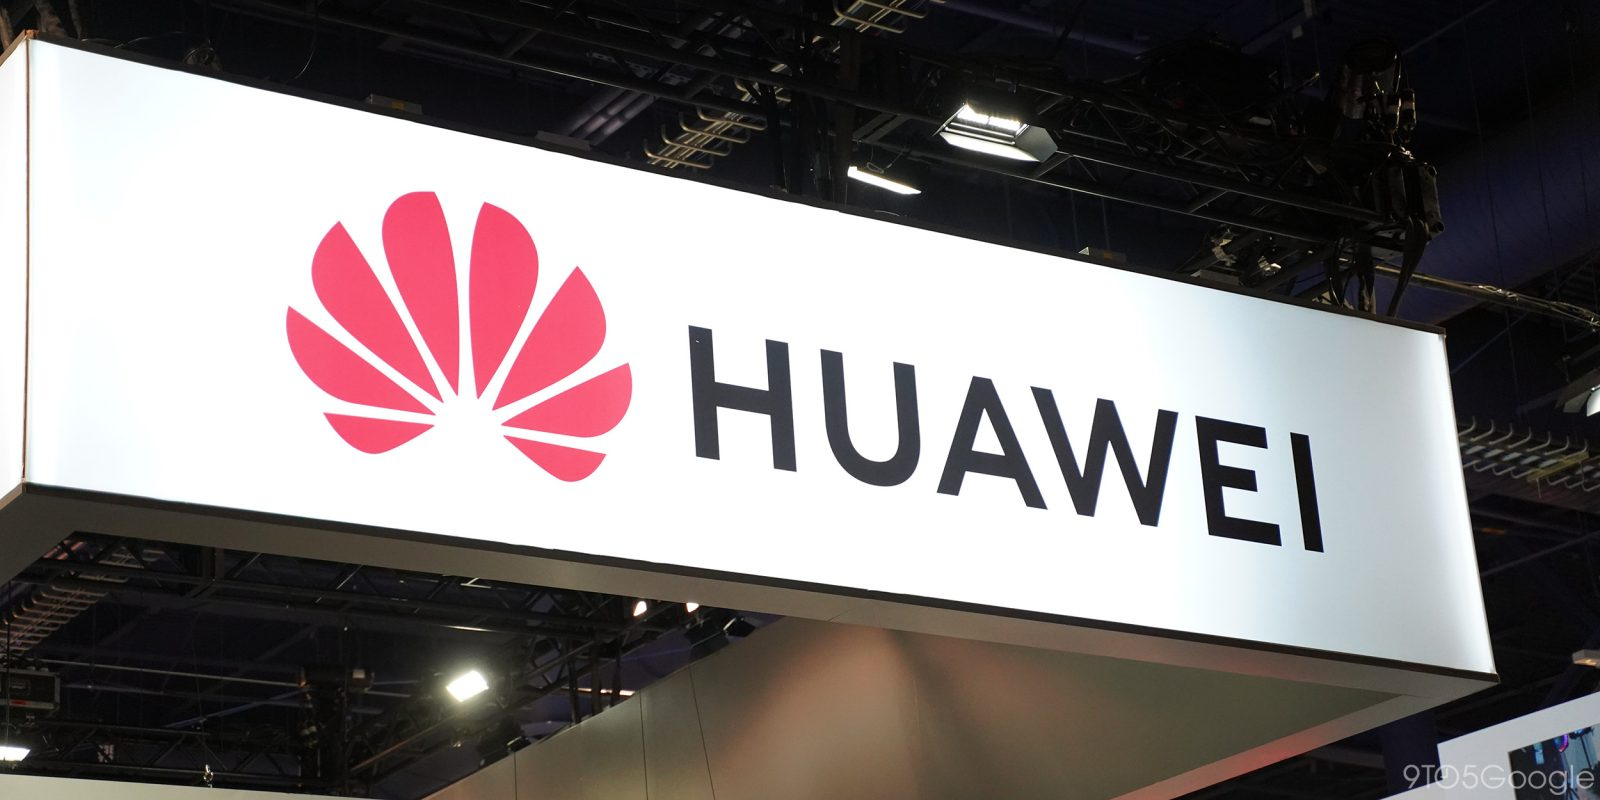 US government confirms Huawei complete trade ban - 9to5Google